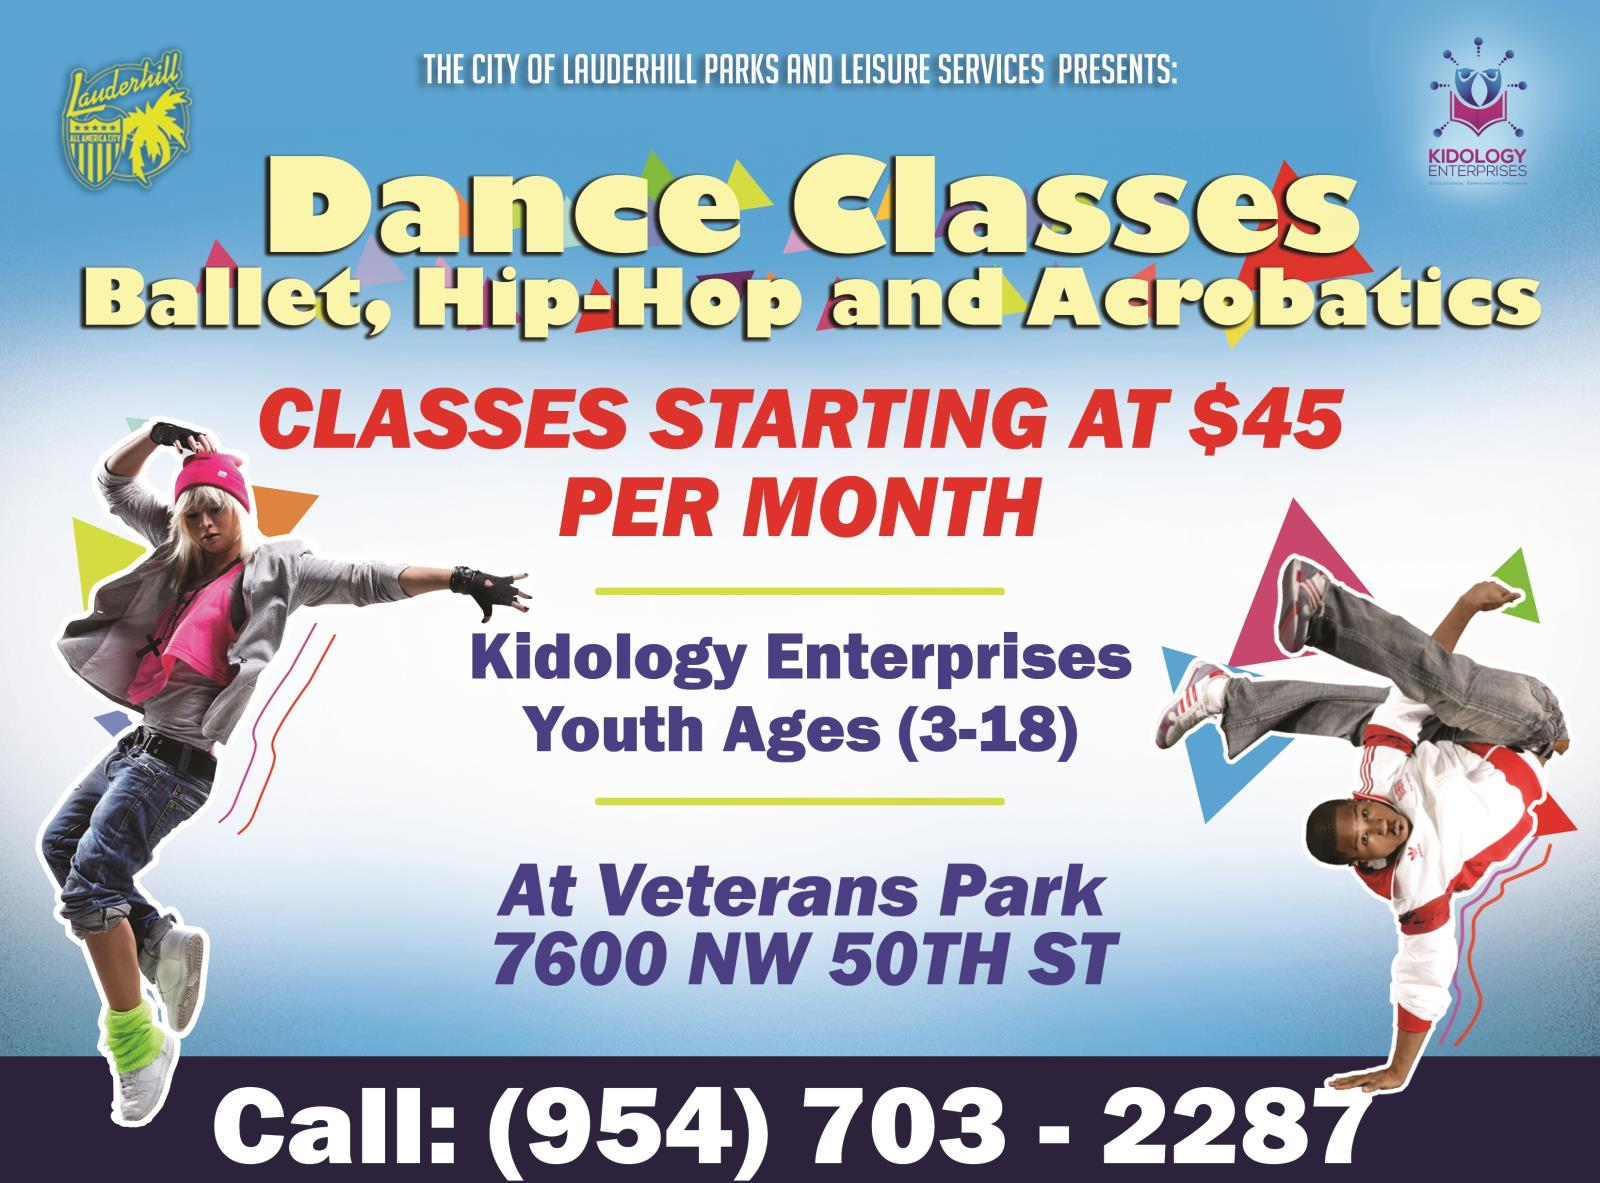 Veterans Park - Kidology Dance Ballet Hip Hop Classes Flyer